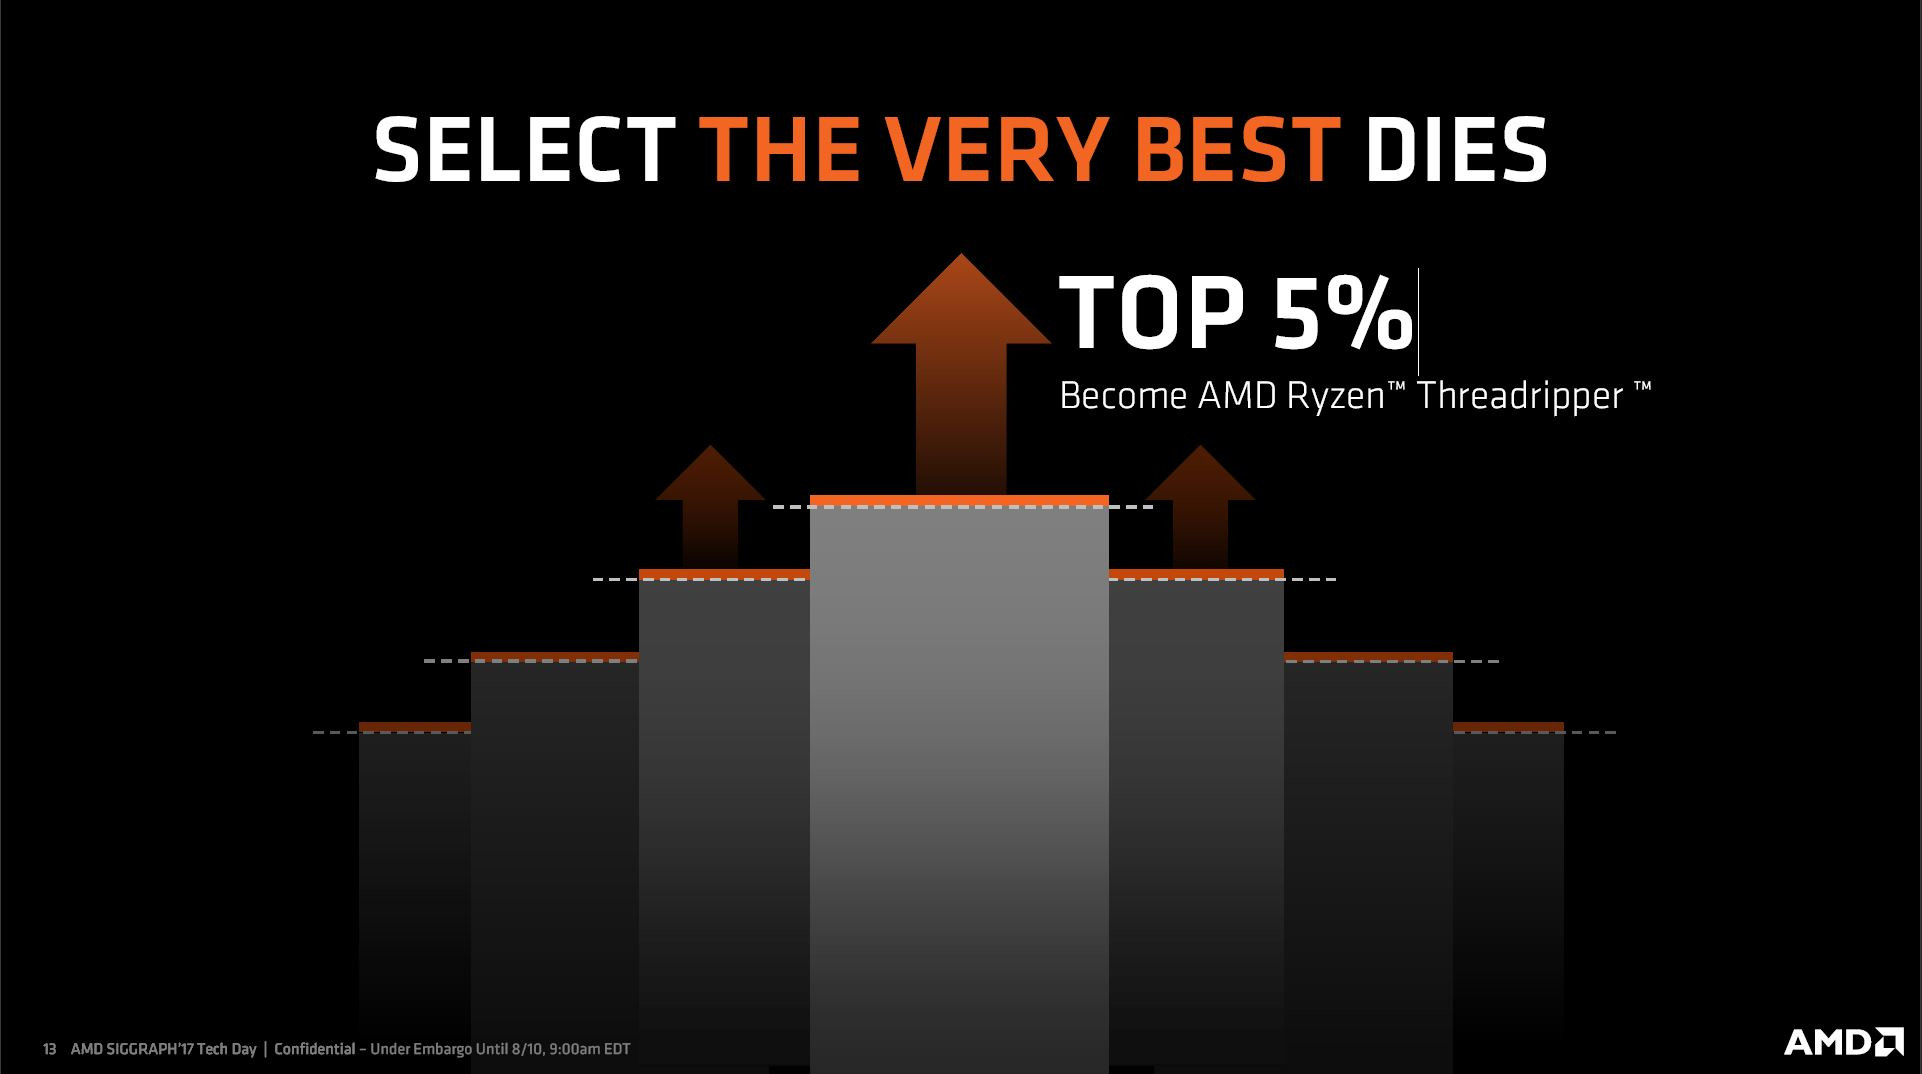 AMD reveals that Threadripper is built using their best Ryzen CPU dies